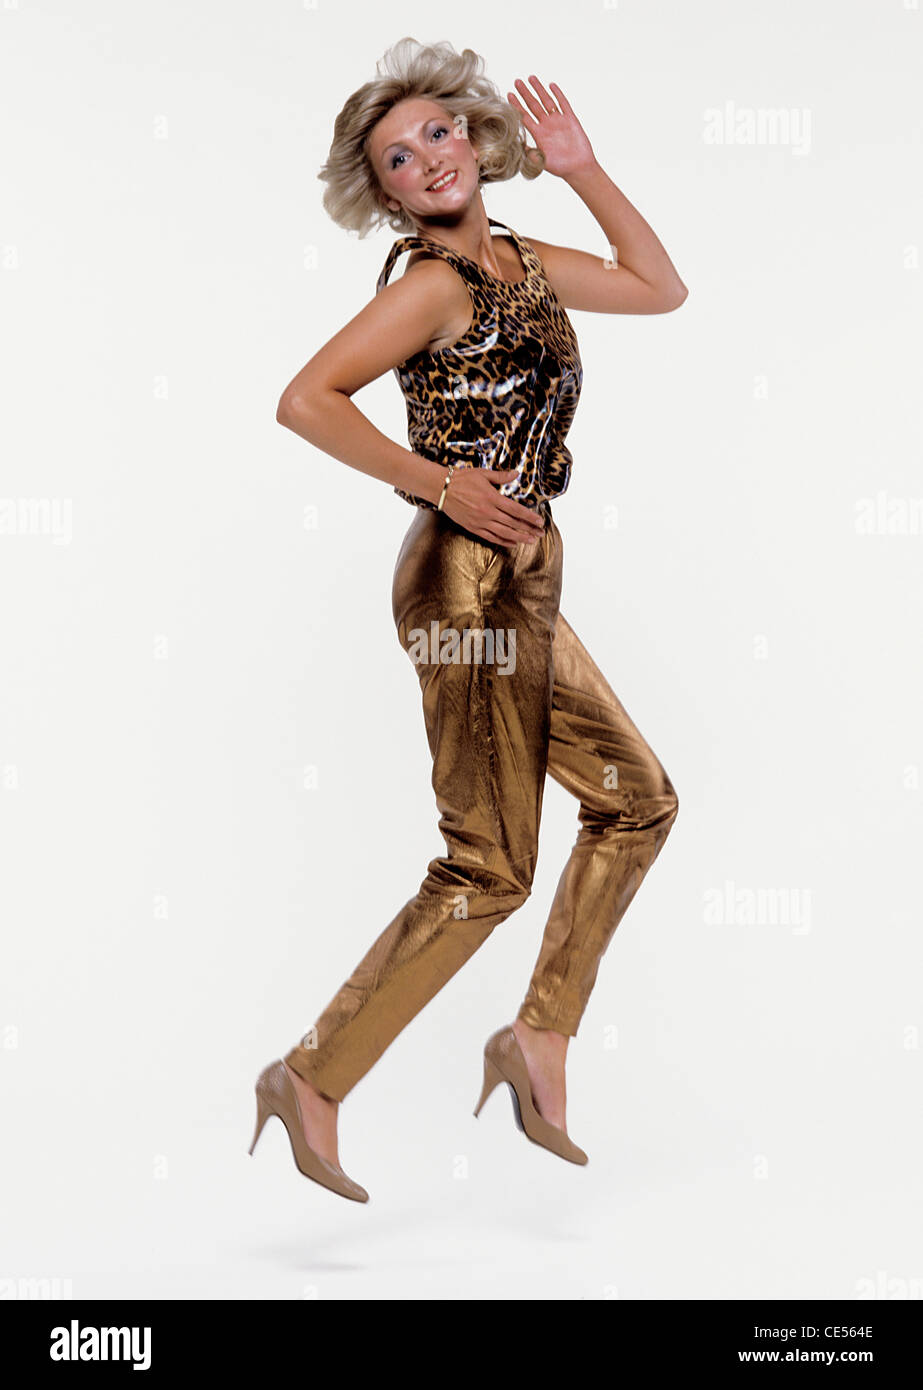 Disco Girl dancing in gold lamé outfit - Stock Image